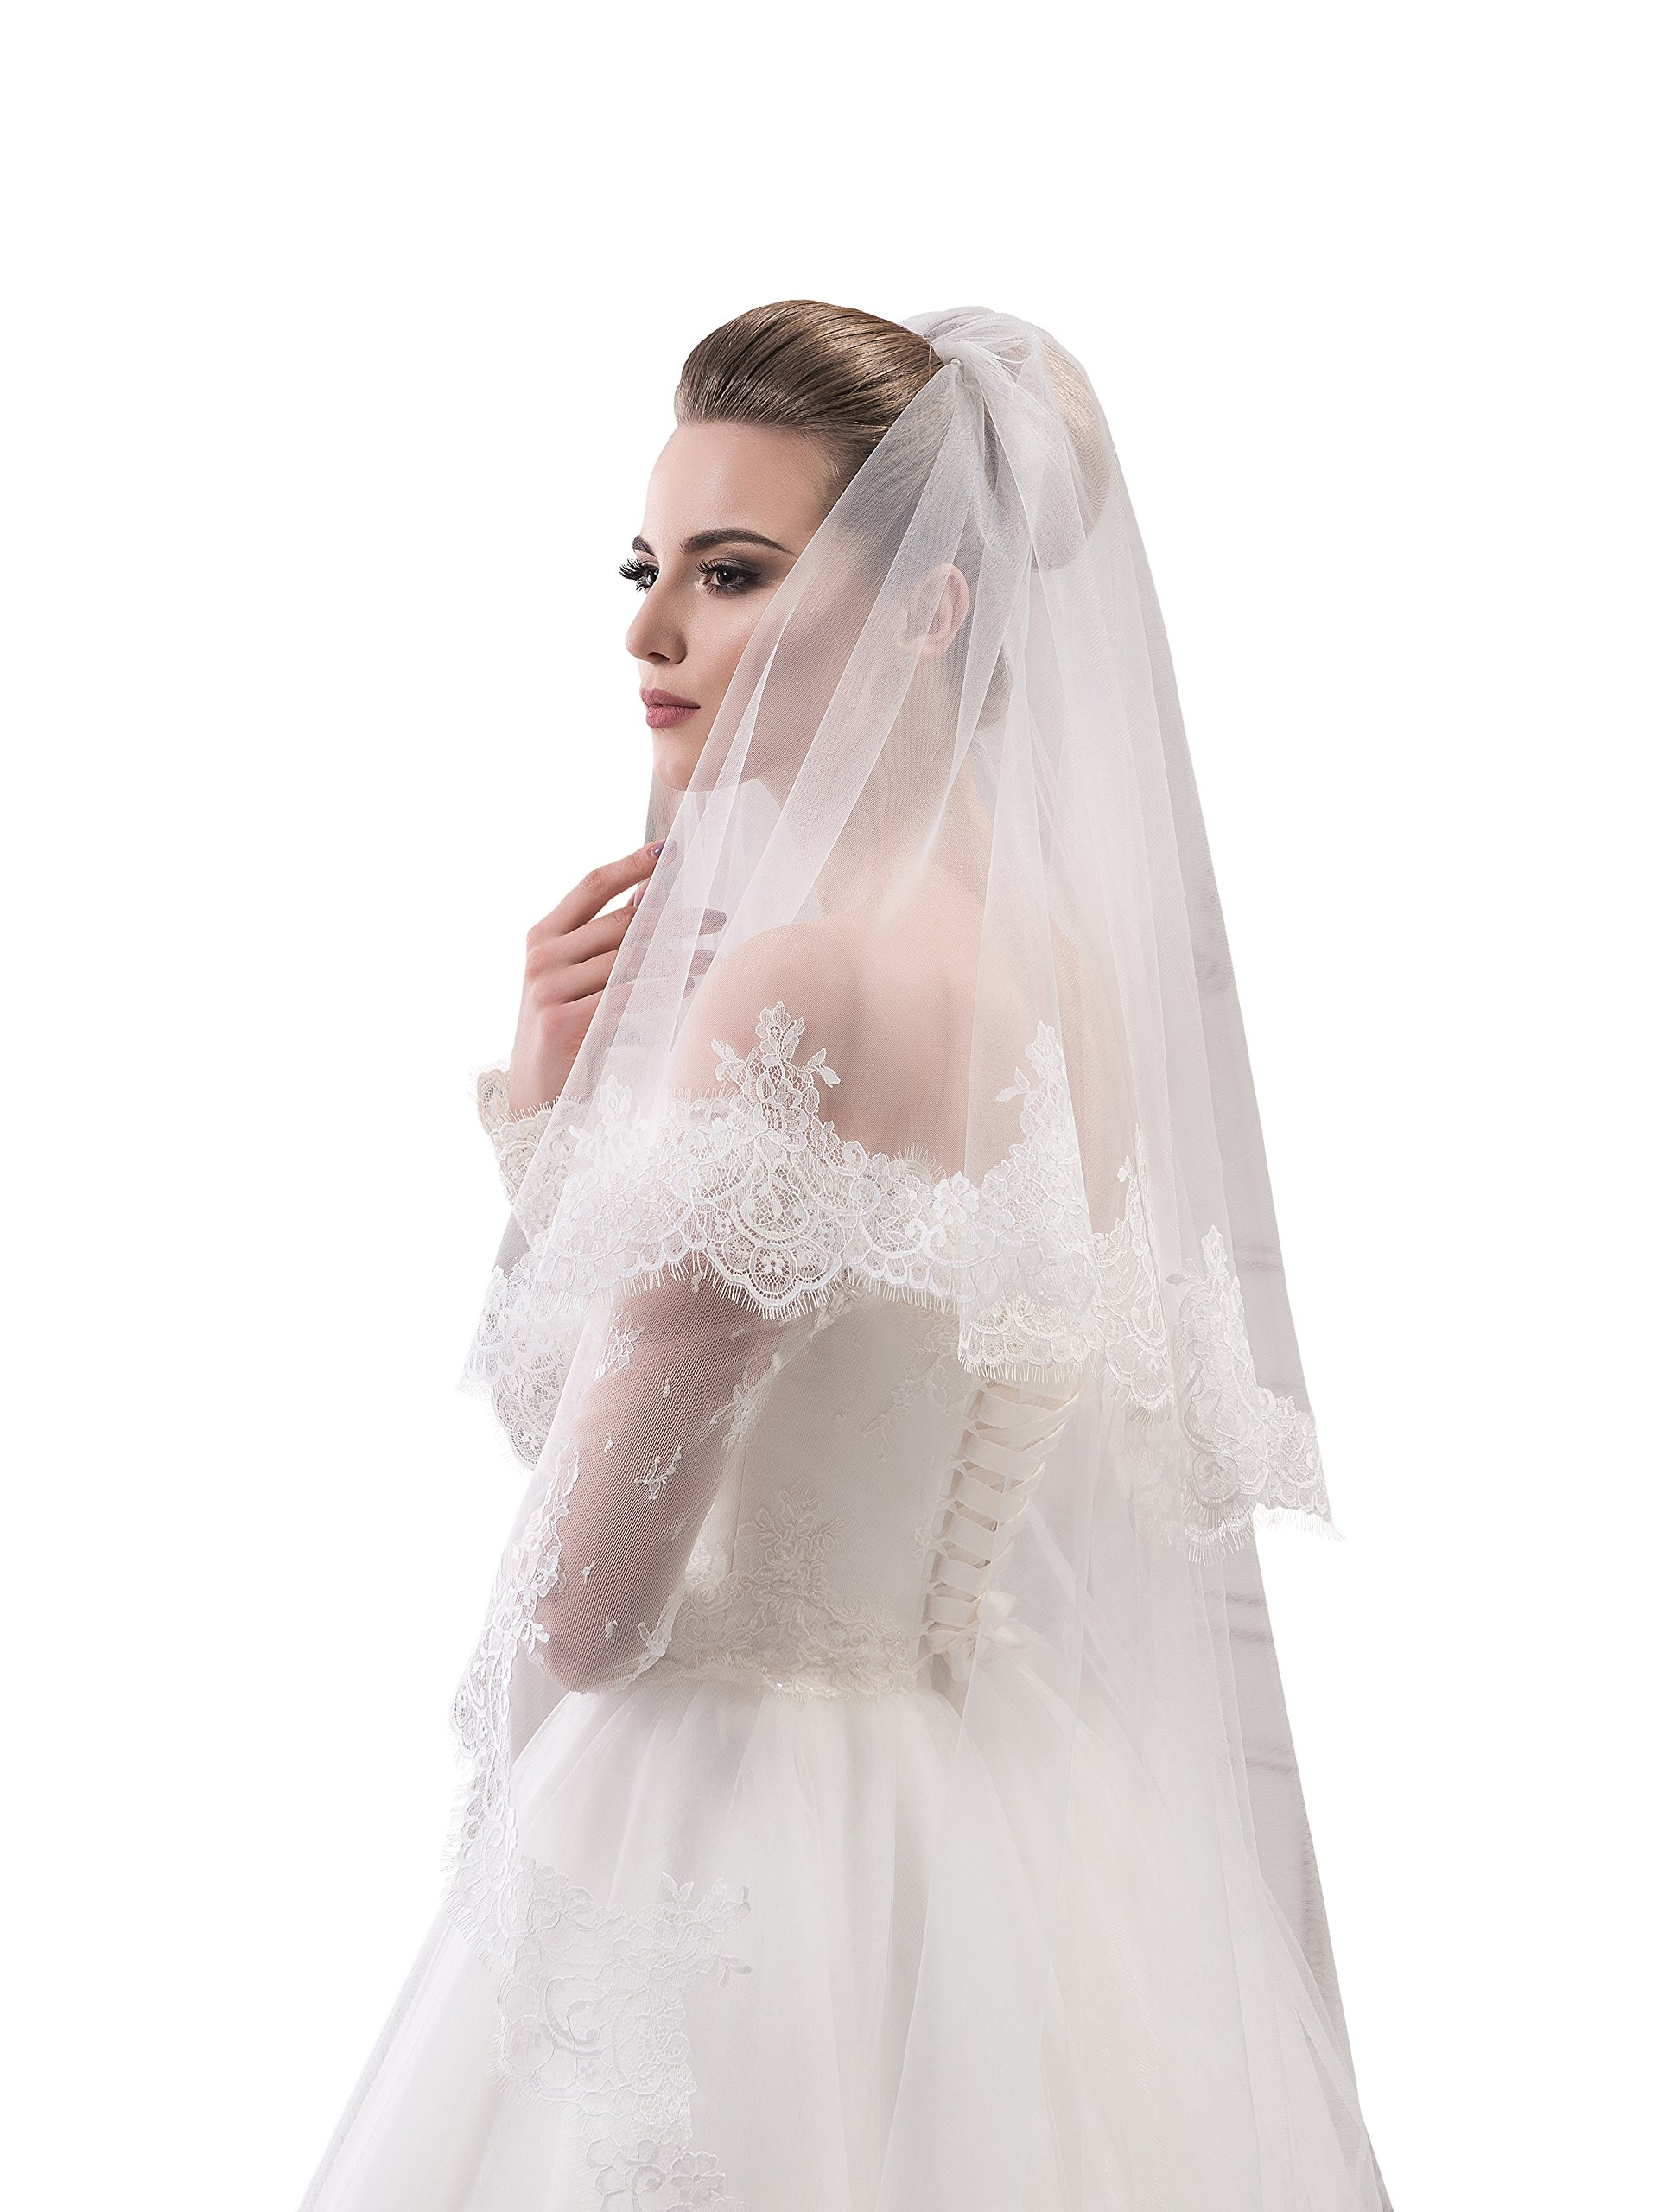 "Bridal Veil Jane from NYC Bride collection (short 30"", ivory) by NYC Bride"